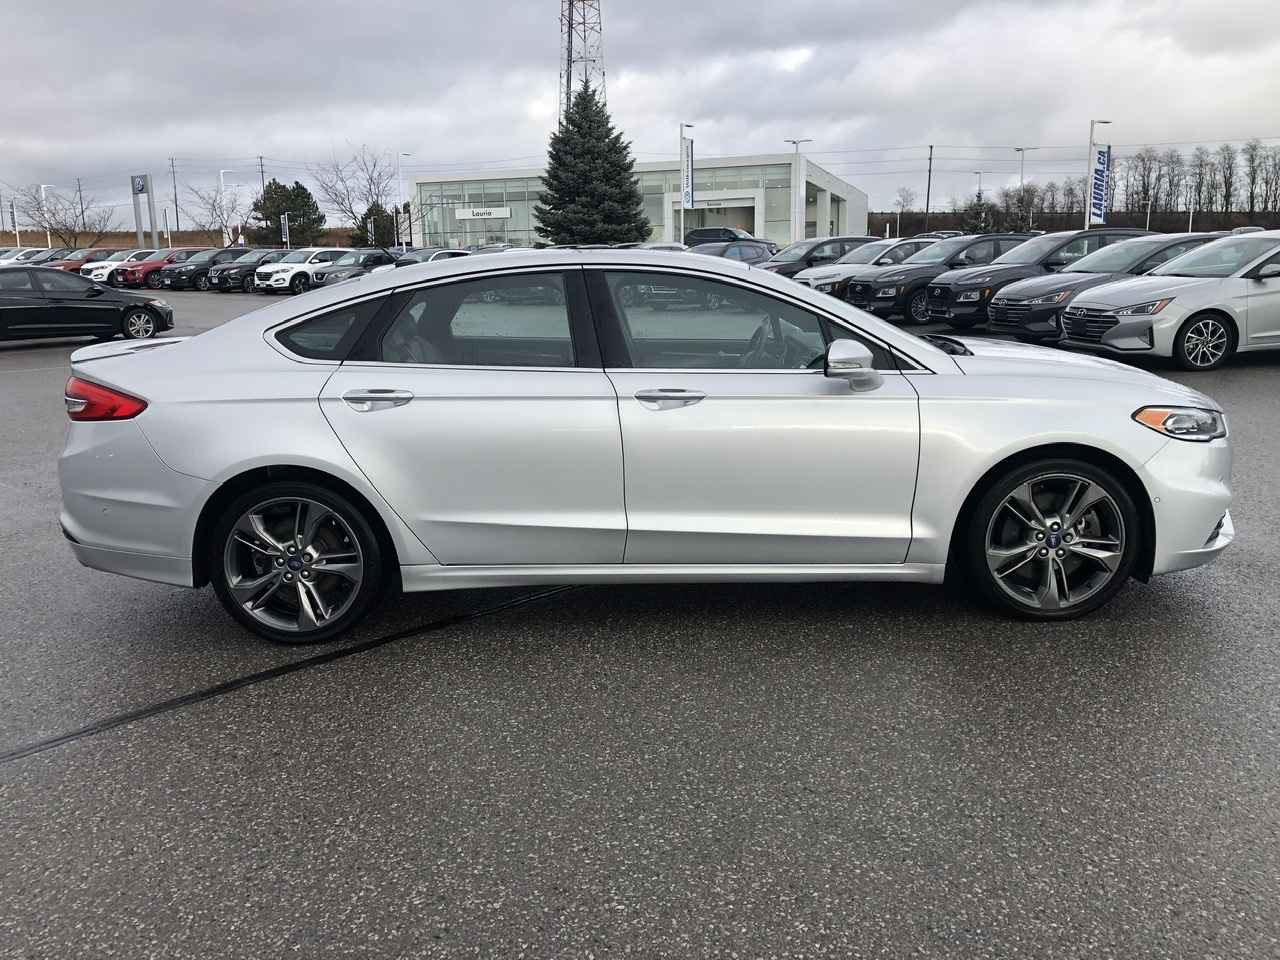 Pre-Owned 2017 Ford Fusion V6 Sport AWD - Loaded!